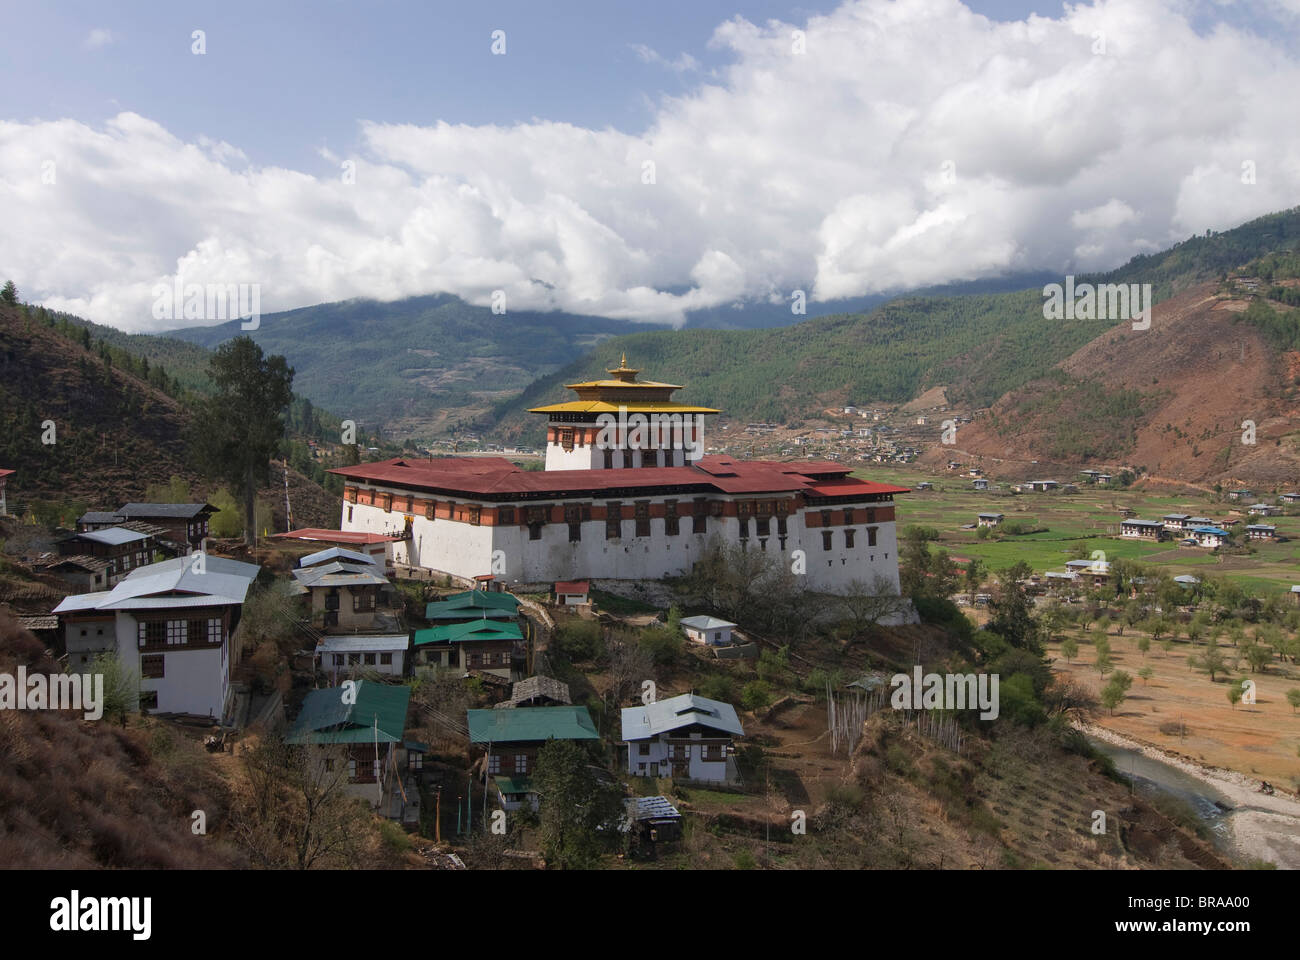 The tsong (old castle), now acting as a Buddhist monastery, Paro, Bhutan, Asia - Stock Image